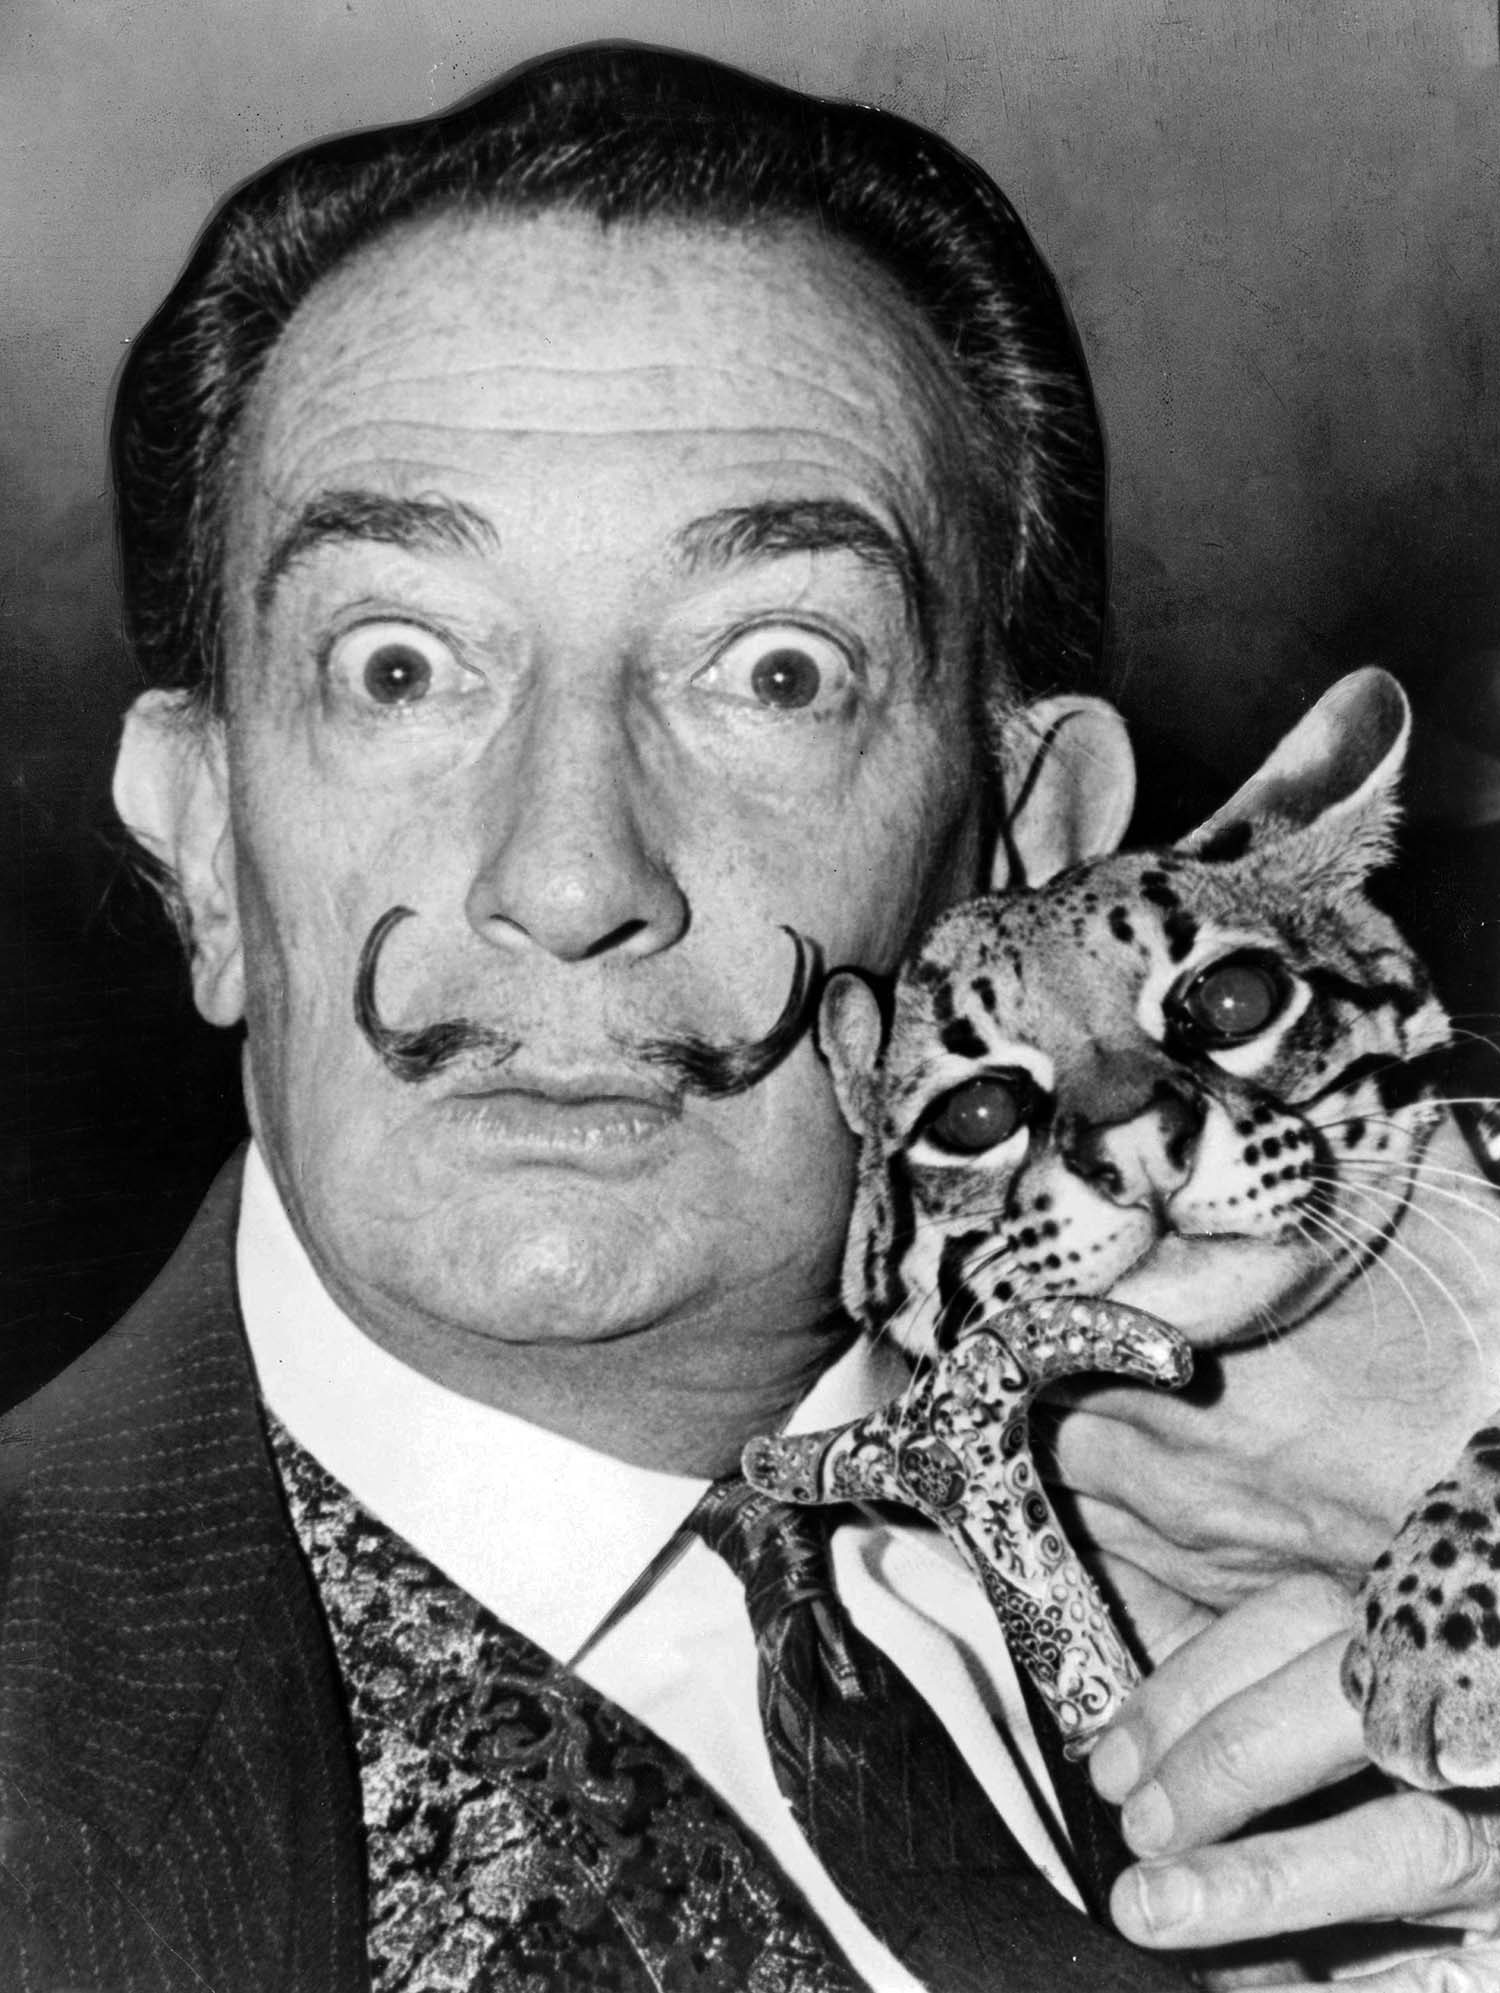 Mr Salvador Dalí with his ocelot Babou at The St Regis, New York, 1965 | Photograph by Mr Roger Higgins/Library of Congress Prints and Photographs Division, Washington DC (fair use)